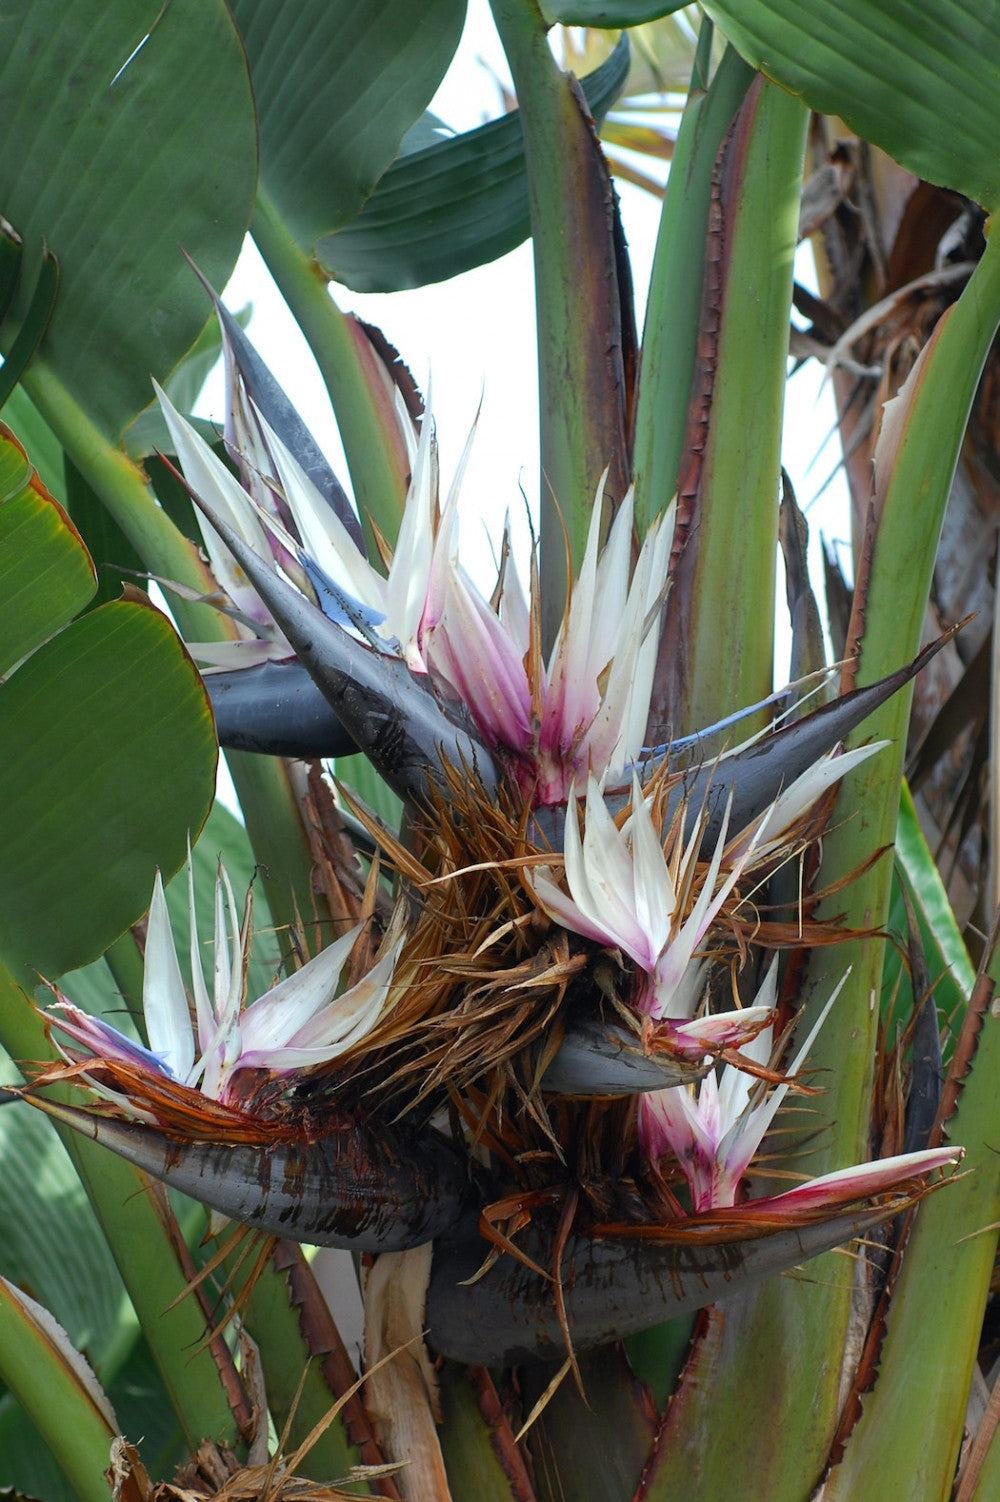 Strelizia Nicolai Evergreen Tree - Natal Wild Banana - Great White Bird of Paradise - Seeds